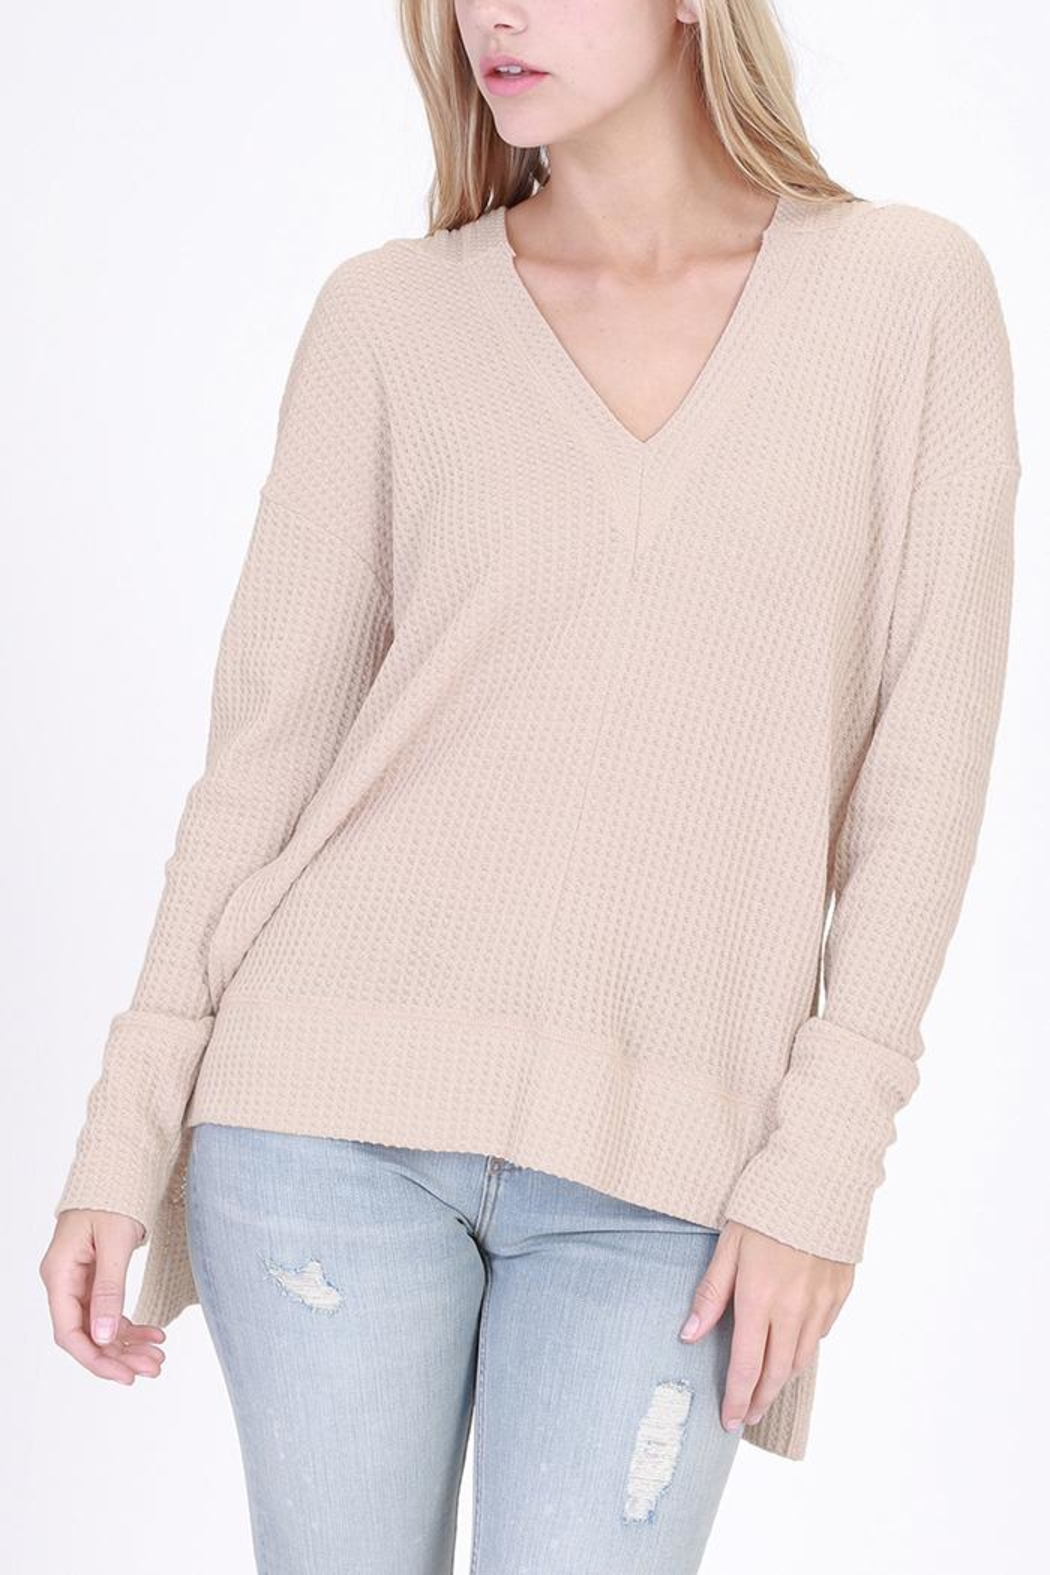 HYFVE Hooded Long-Sleeve Thermal - Front Cropped Image